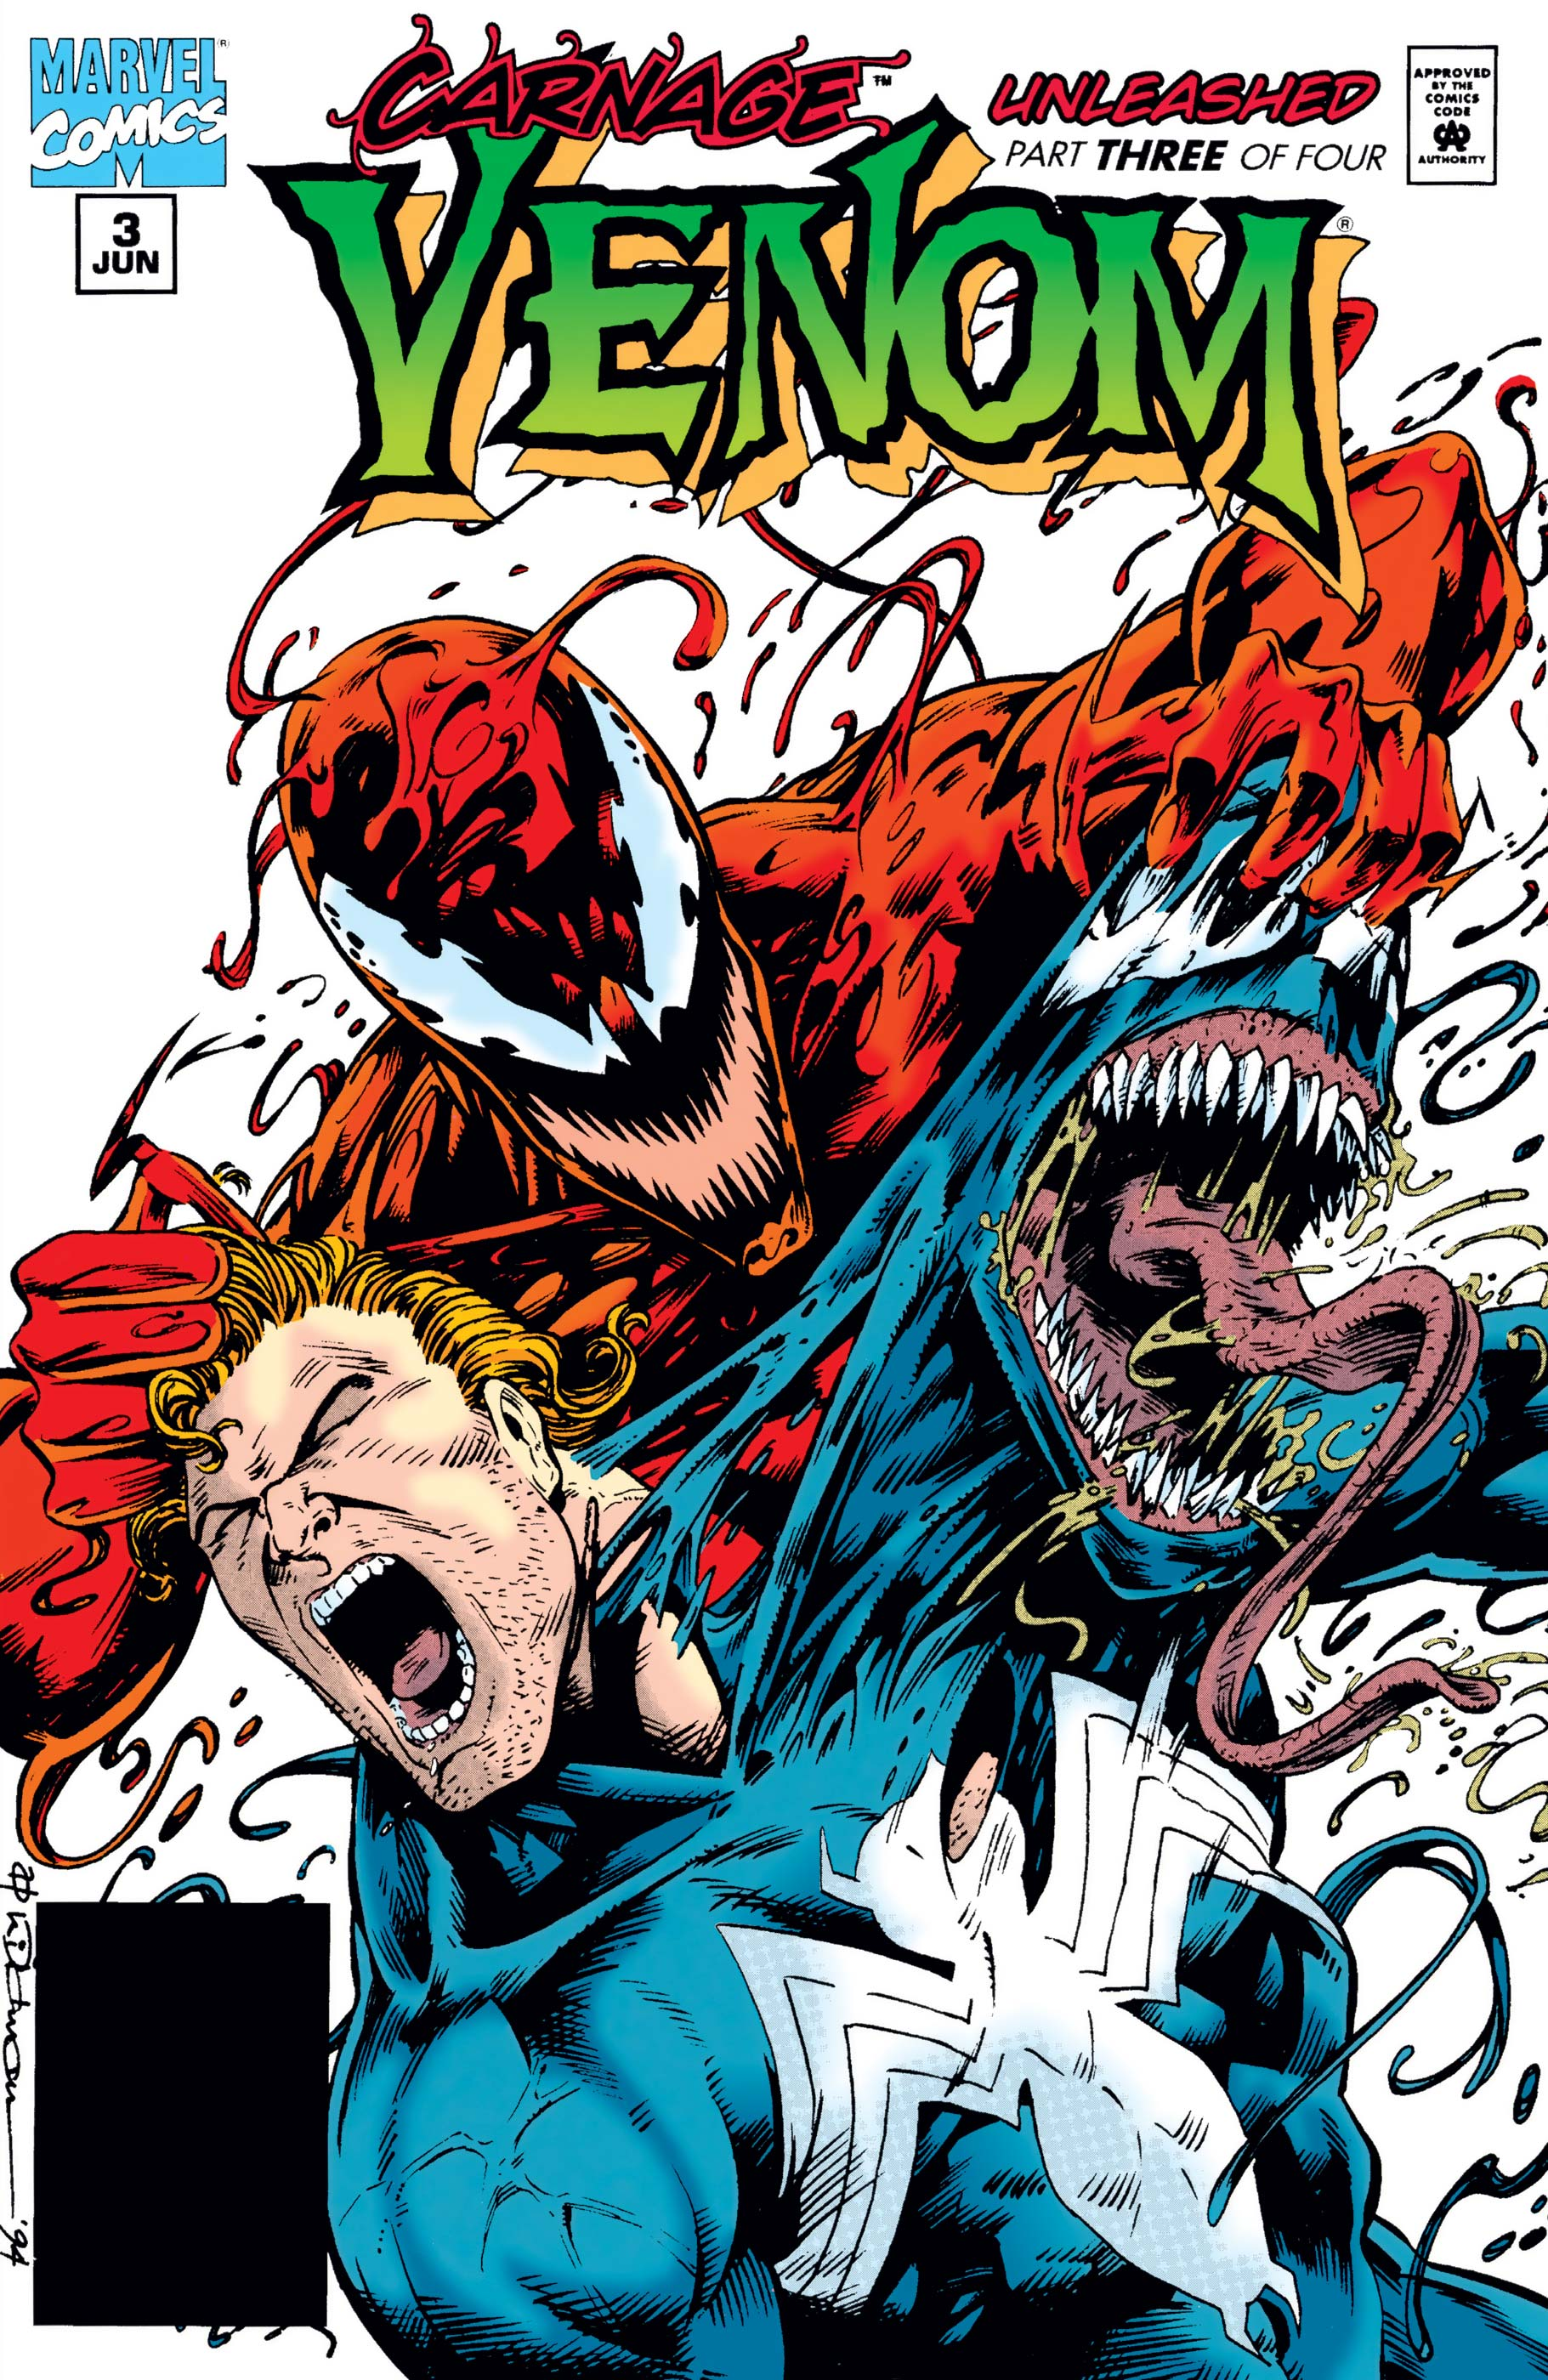 Venom: Carnage Unleashed (1995) #3